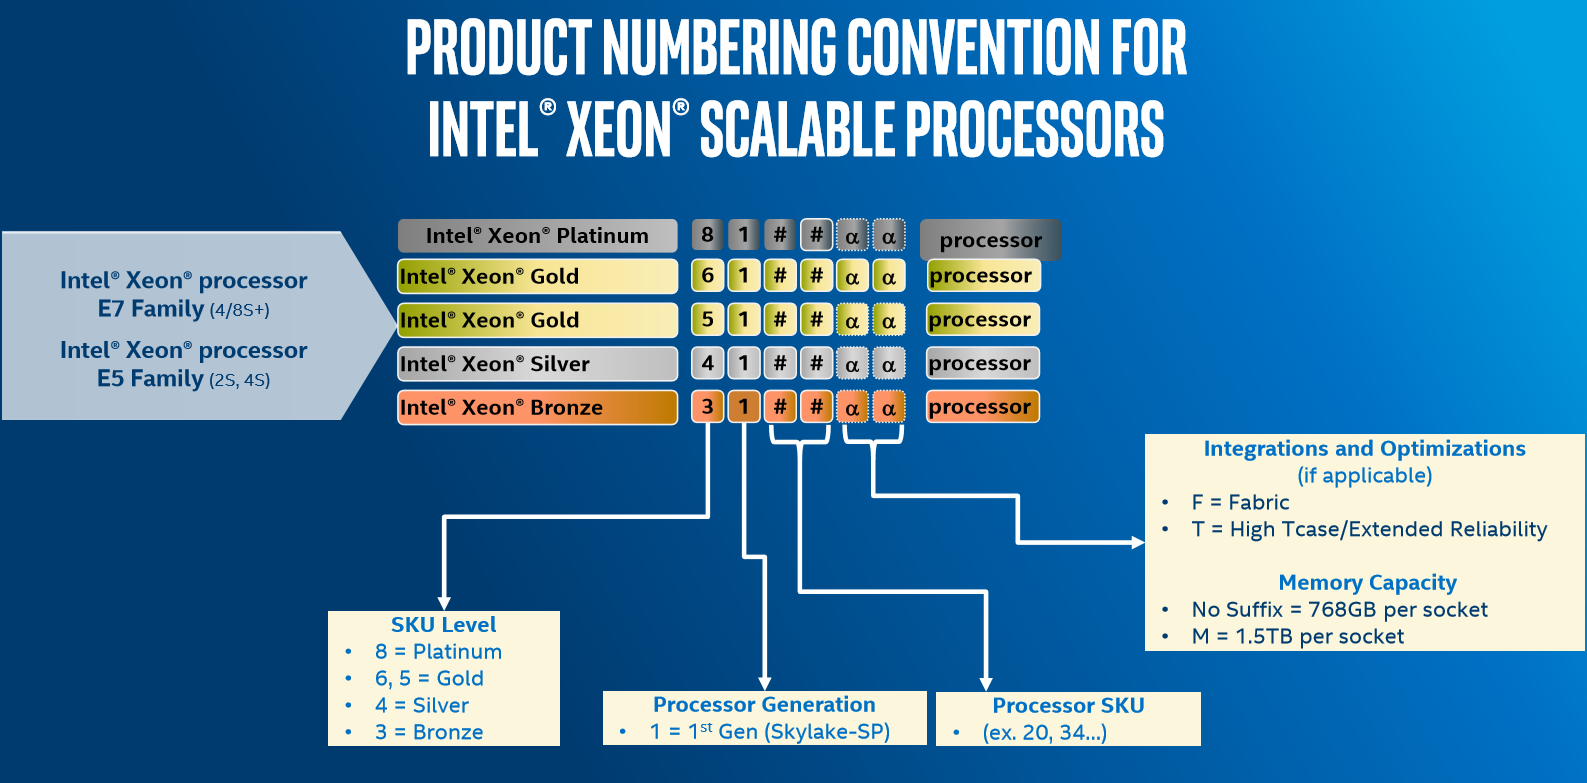 Xeon Skylake Sp Skus Sizing Up Servers Intels The Diagrams Identify Main Components Of Intelr Desktop Board Aside From Name Platinum Gold Silver Bronze Four Digits Indicate Sku Level Generation And Then A Pair For General Performance